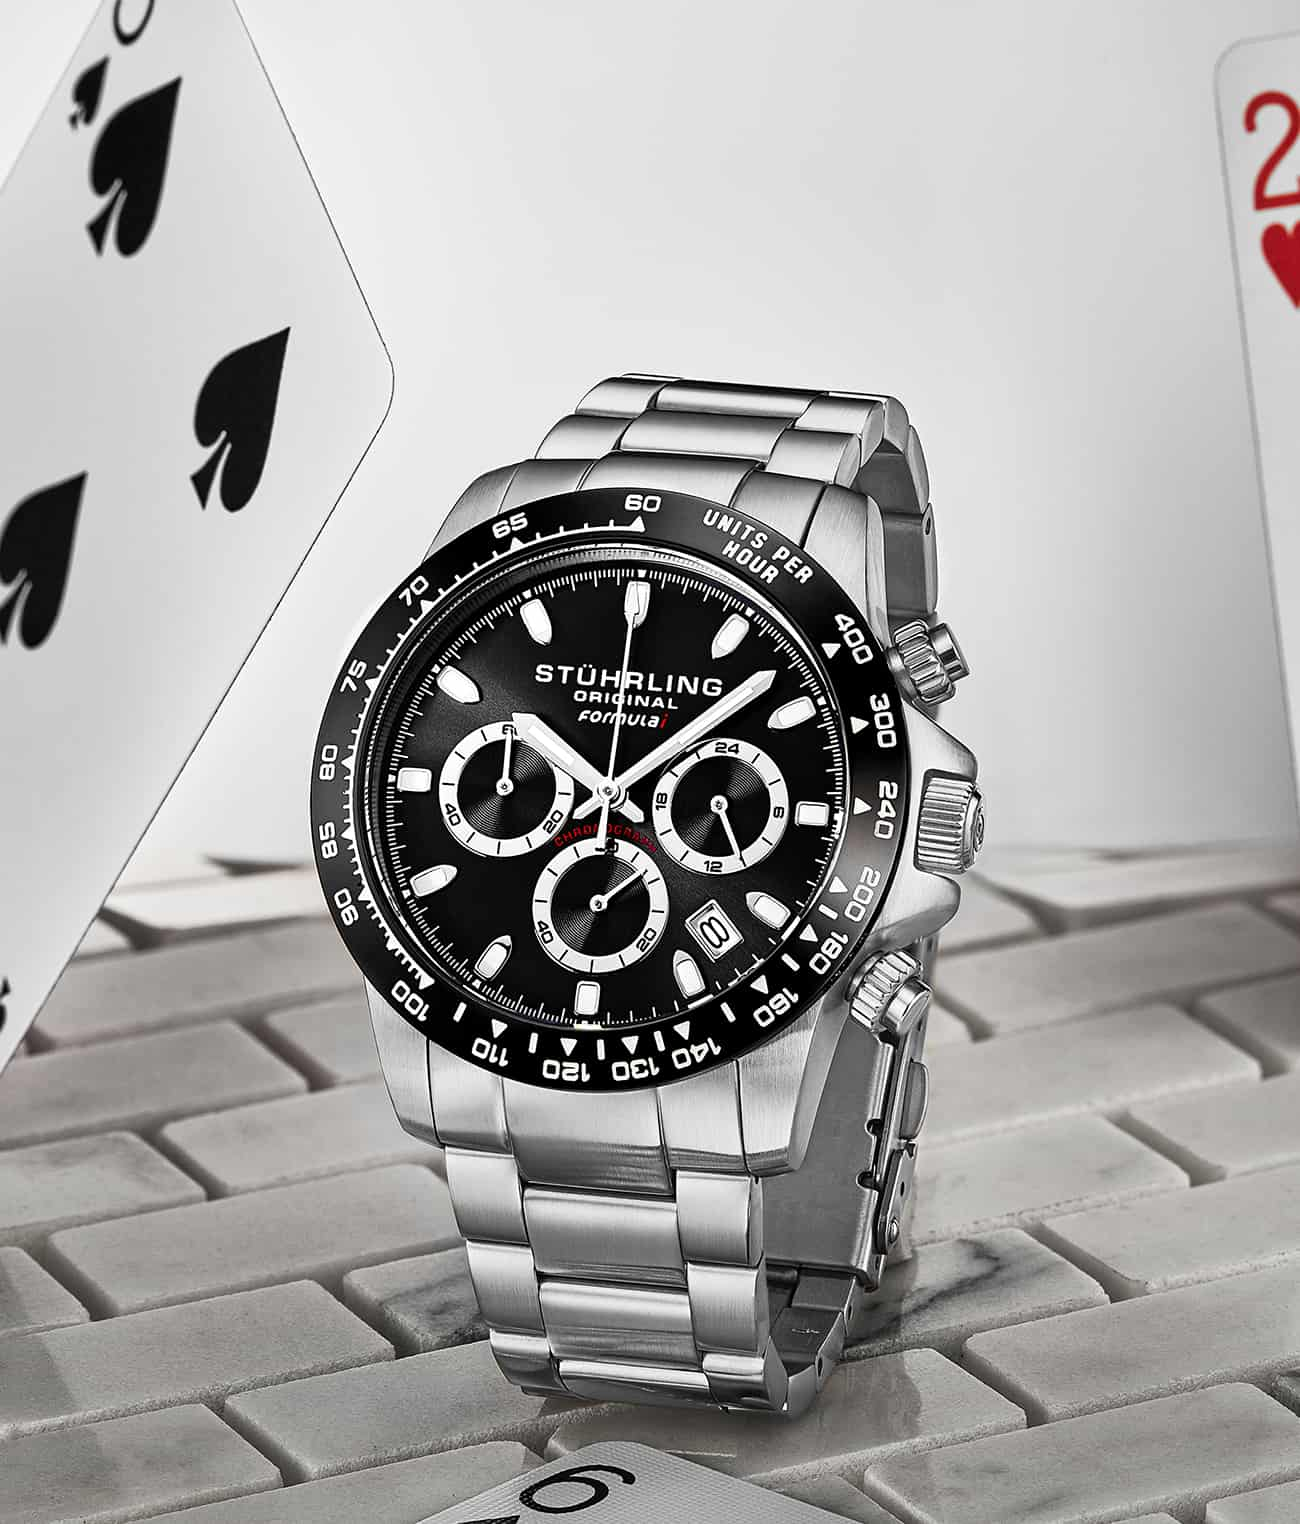 Formulai 891 Quartz 42mm Chronograph